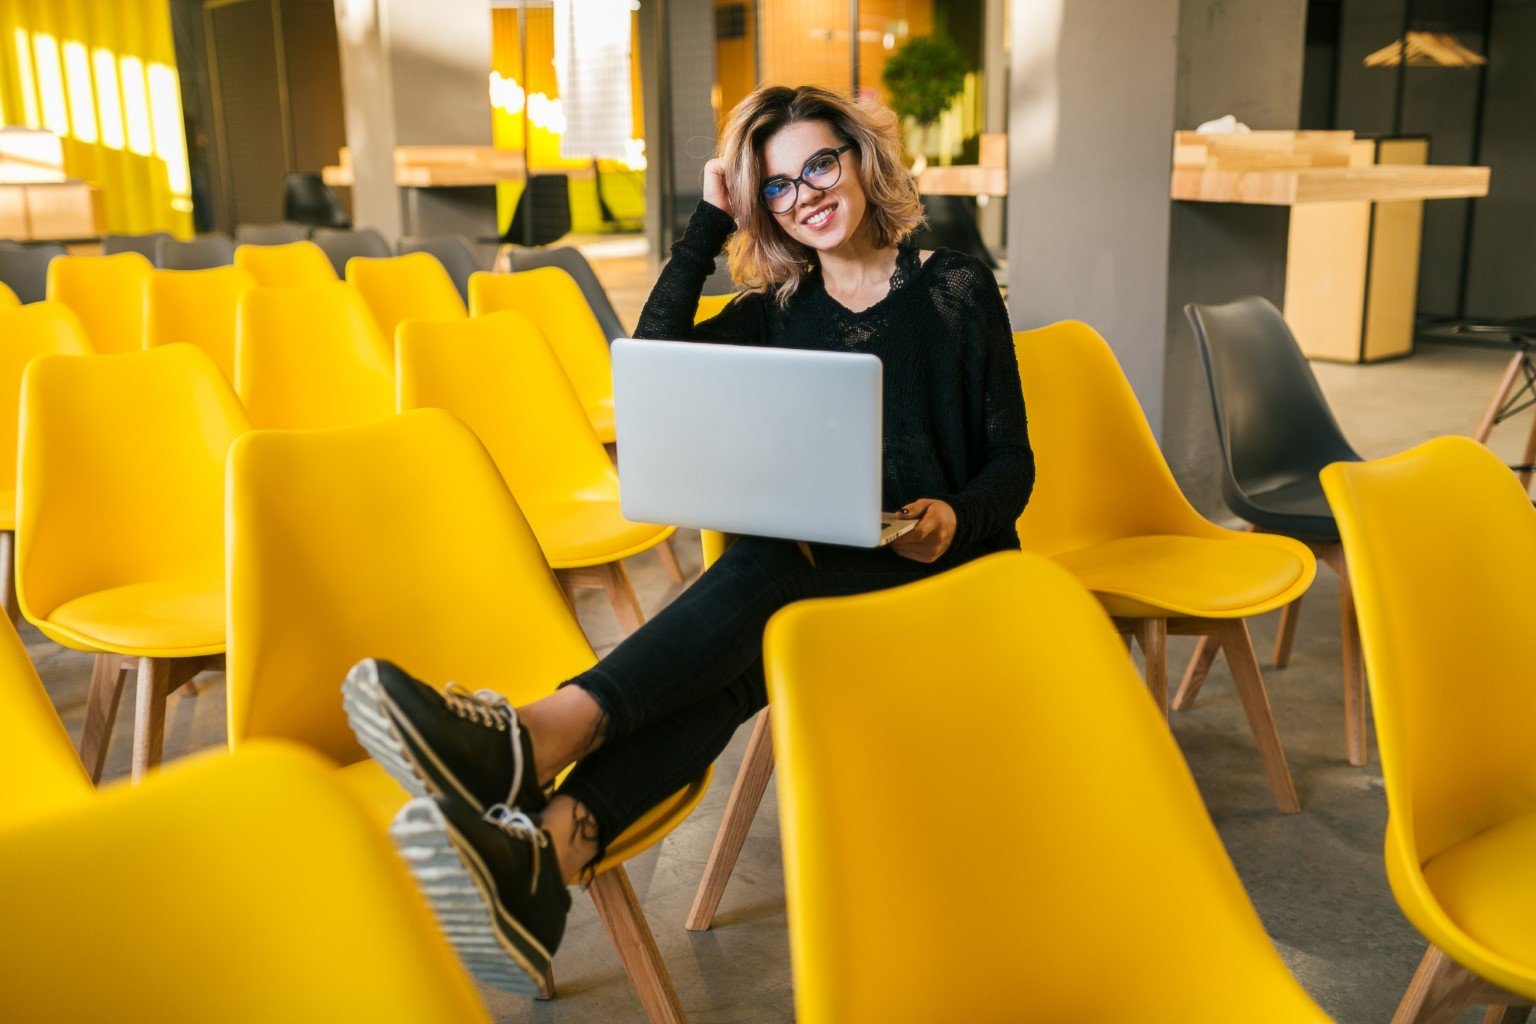 Woman with laptop on yellow chairs